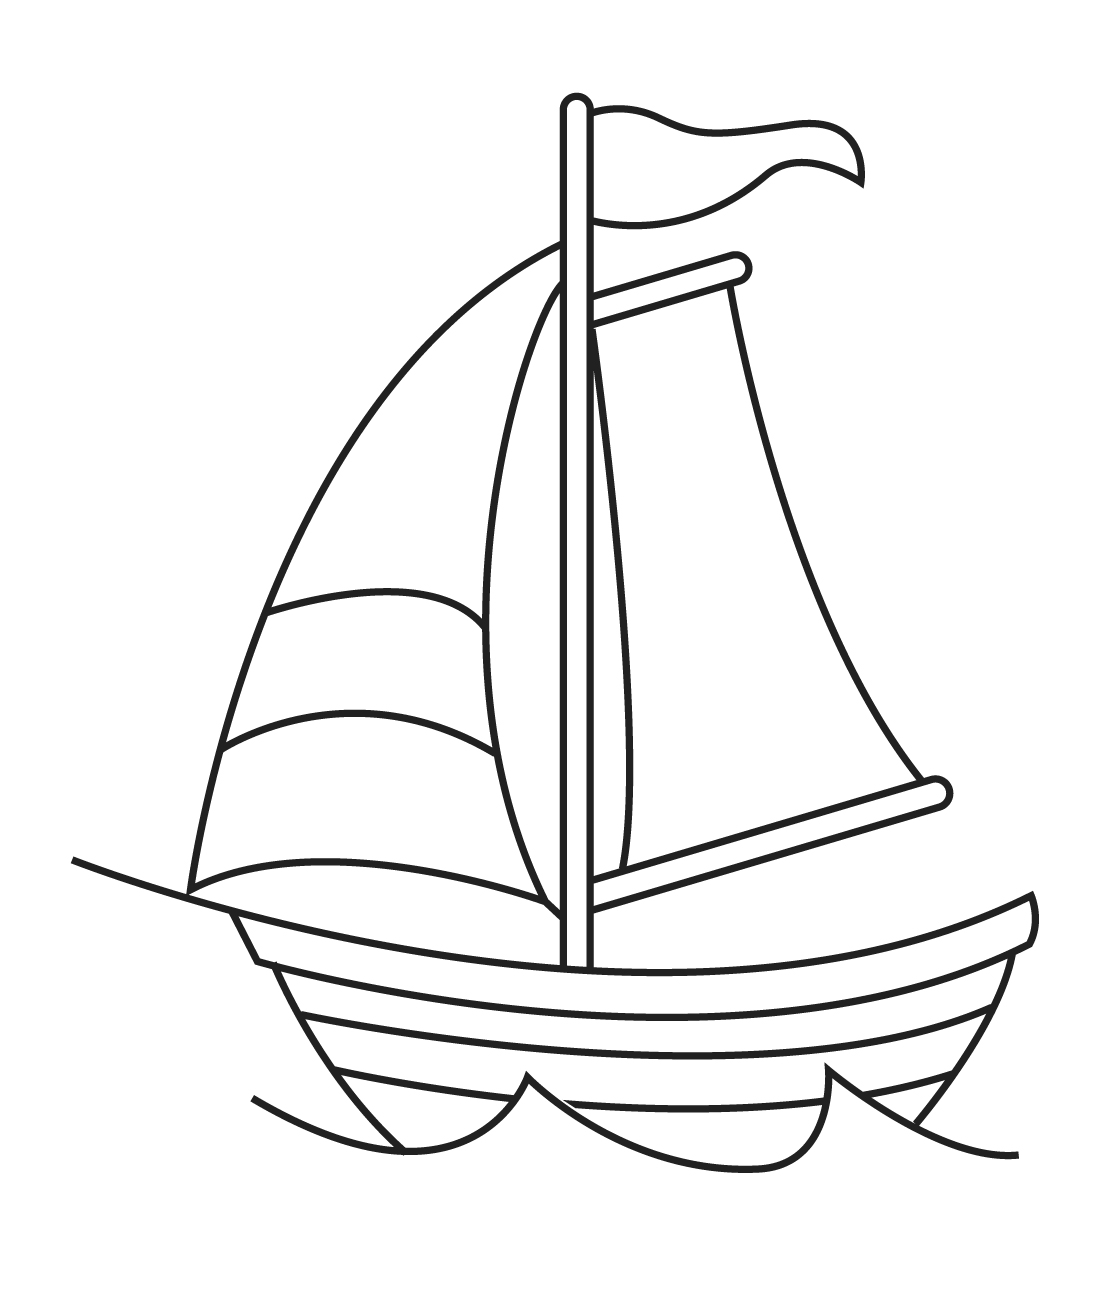 clip freeuse Free simple ship drawing. Yacht clipart easy